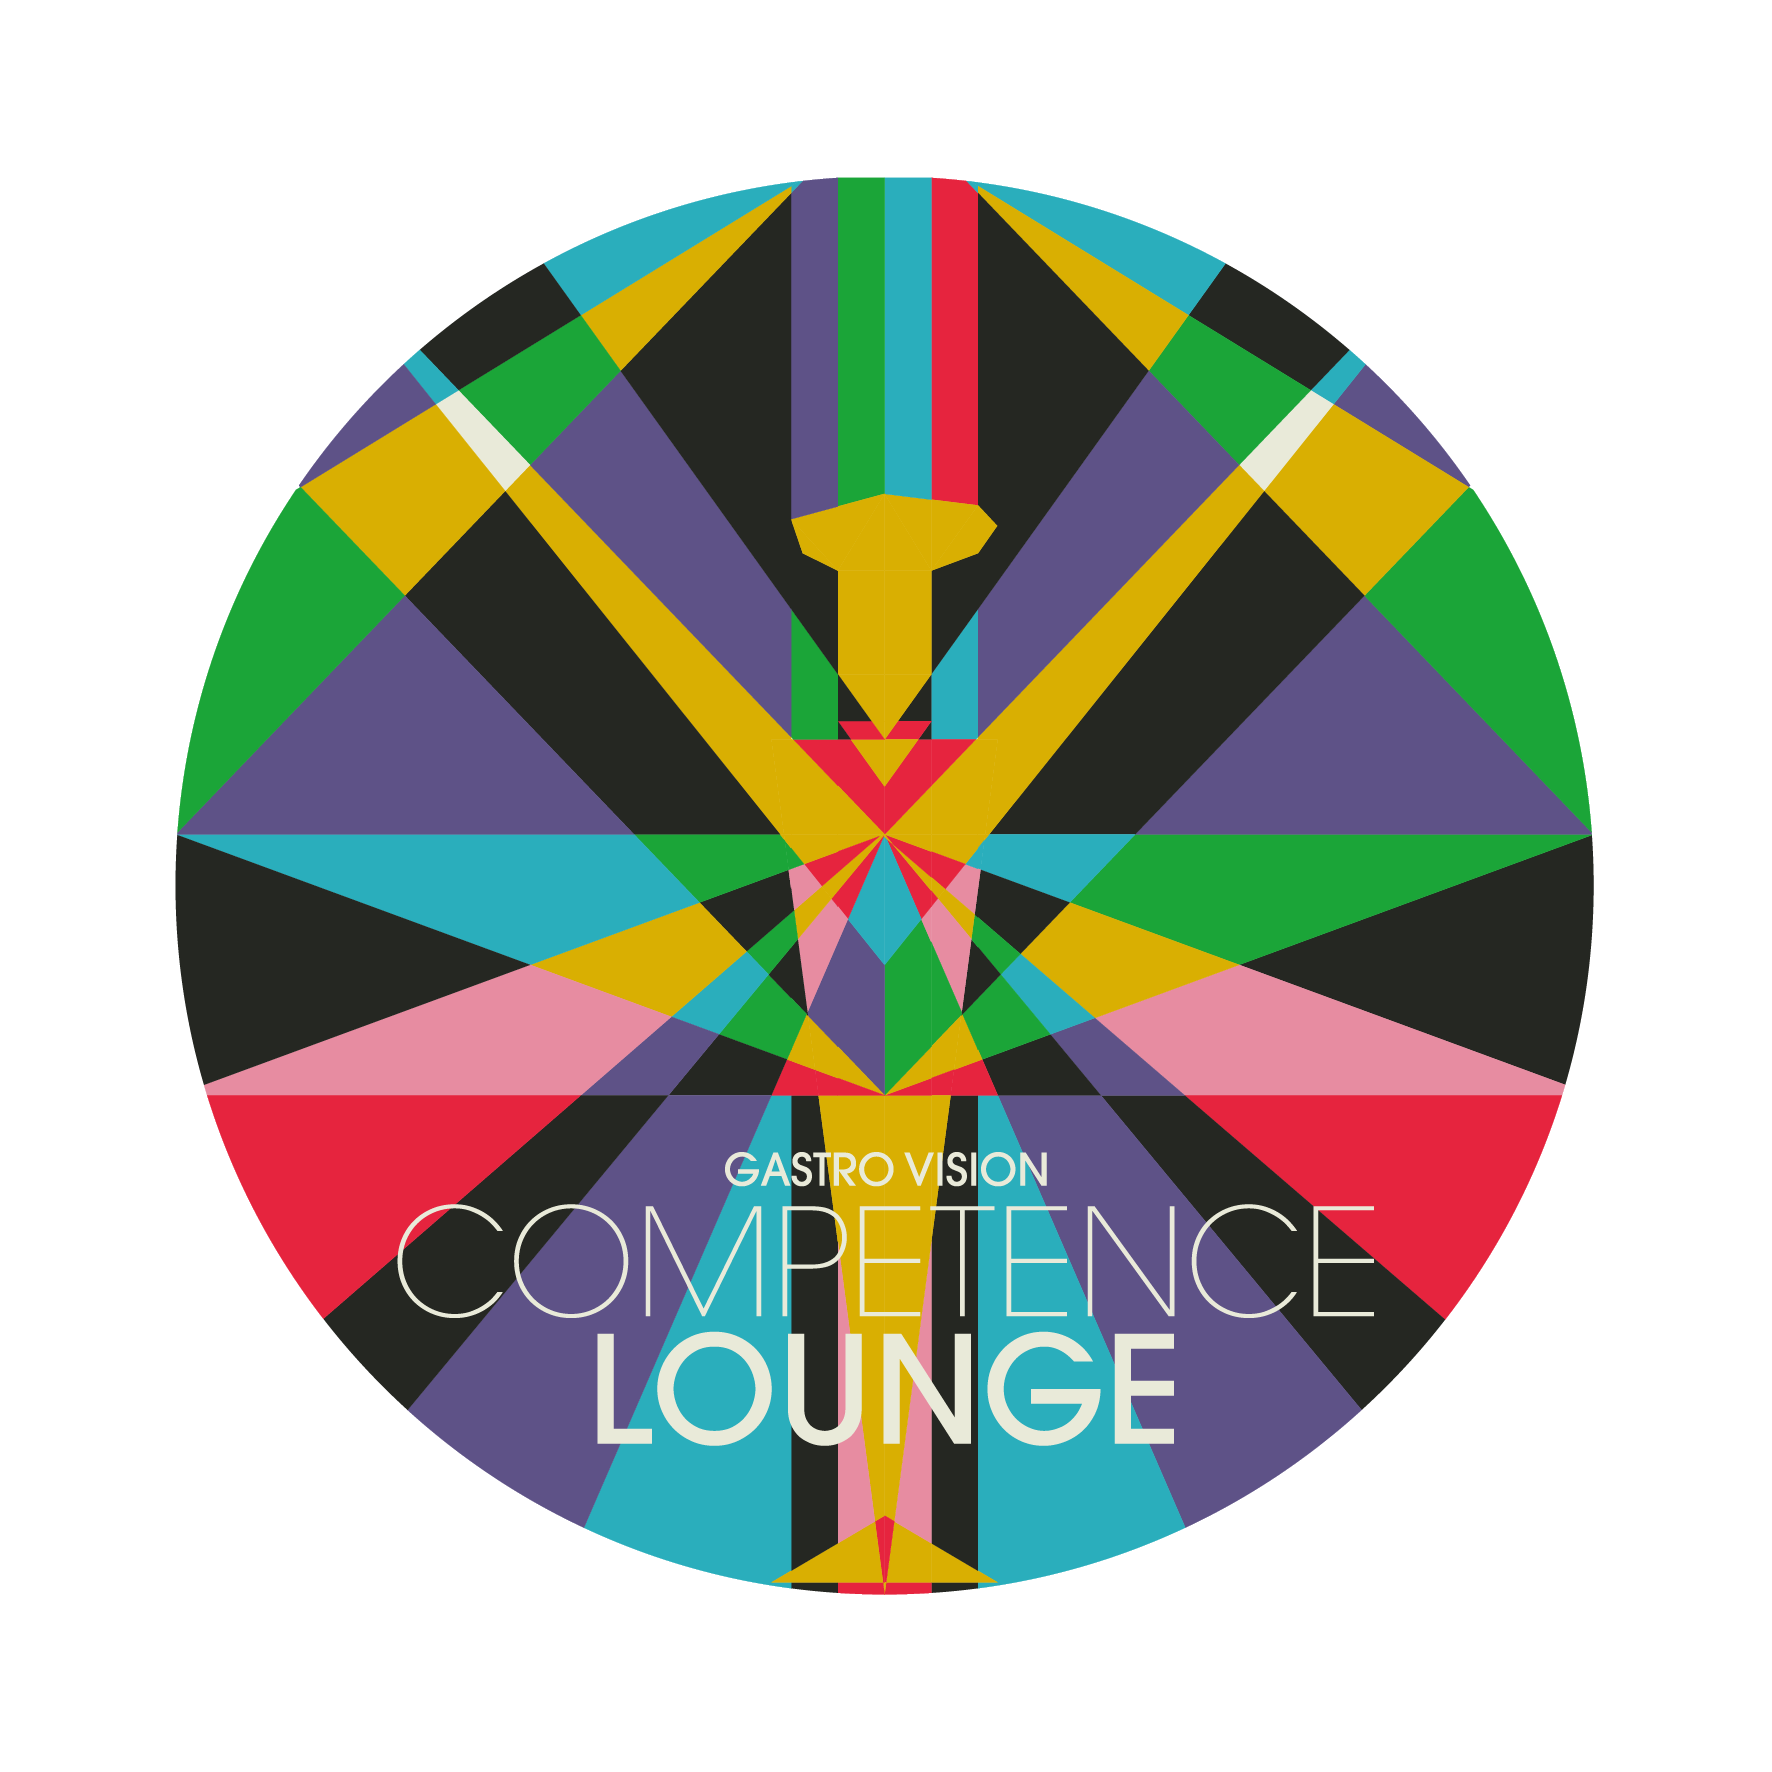 Gastro Vision - Competence Lounge